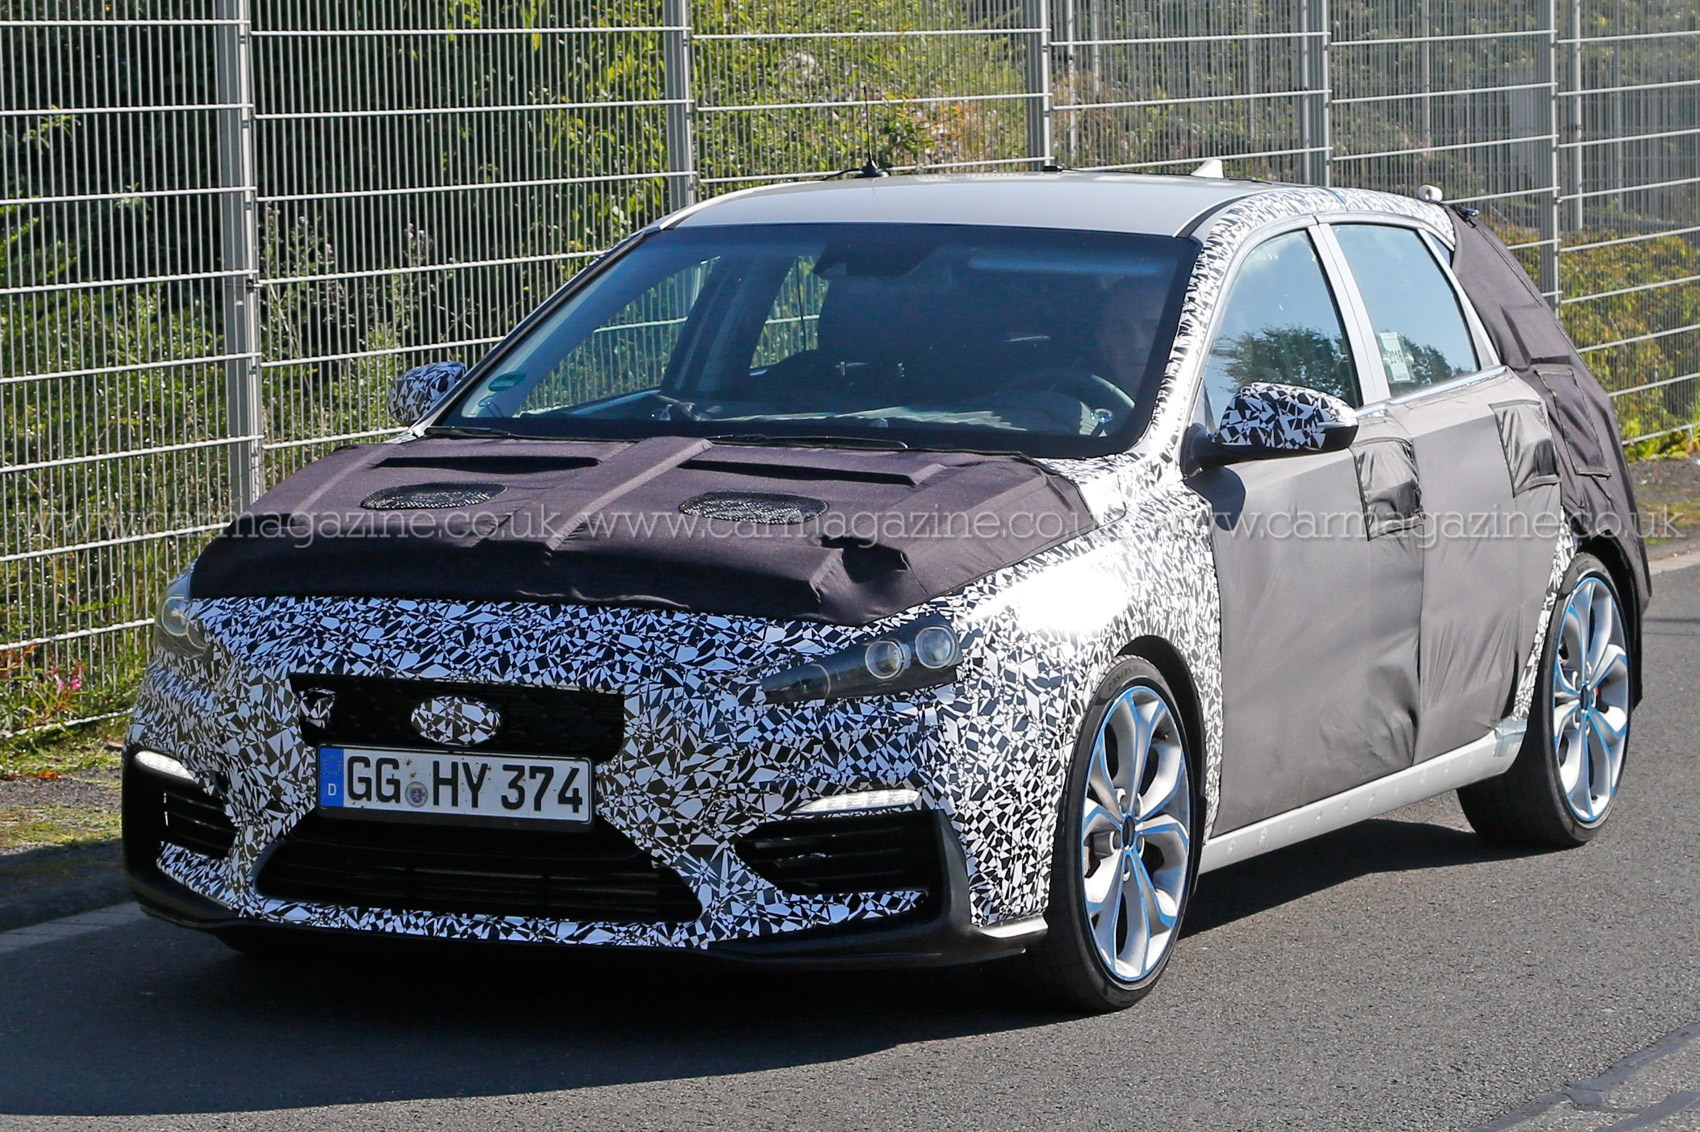 hyundai i30 n series 2017 spy shots a hotter kind of hyundai by car magazine. Black Bedroom Furniture Sets. Home Design Ideas